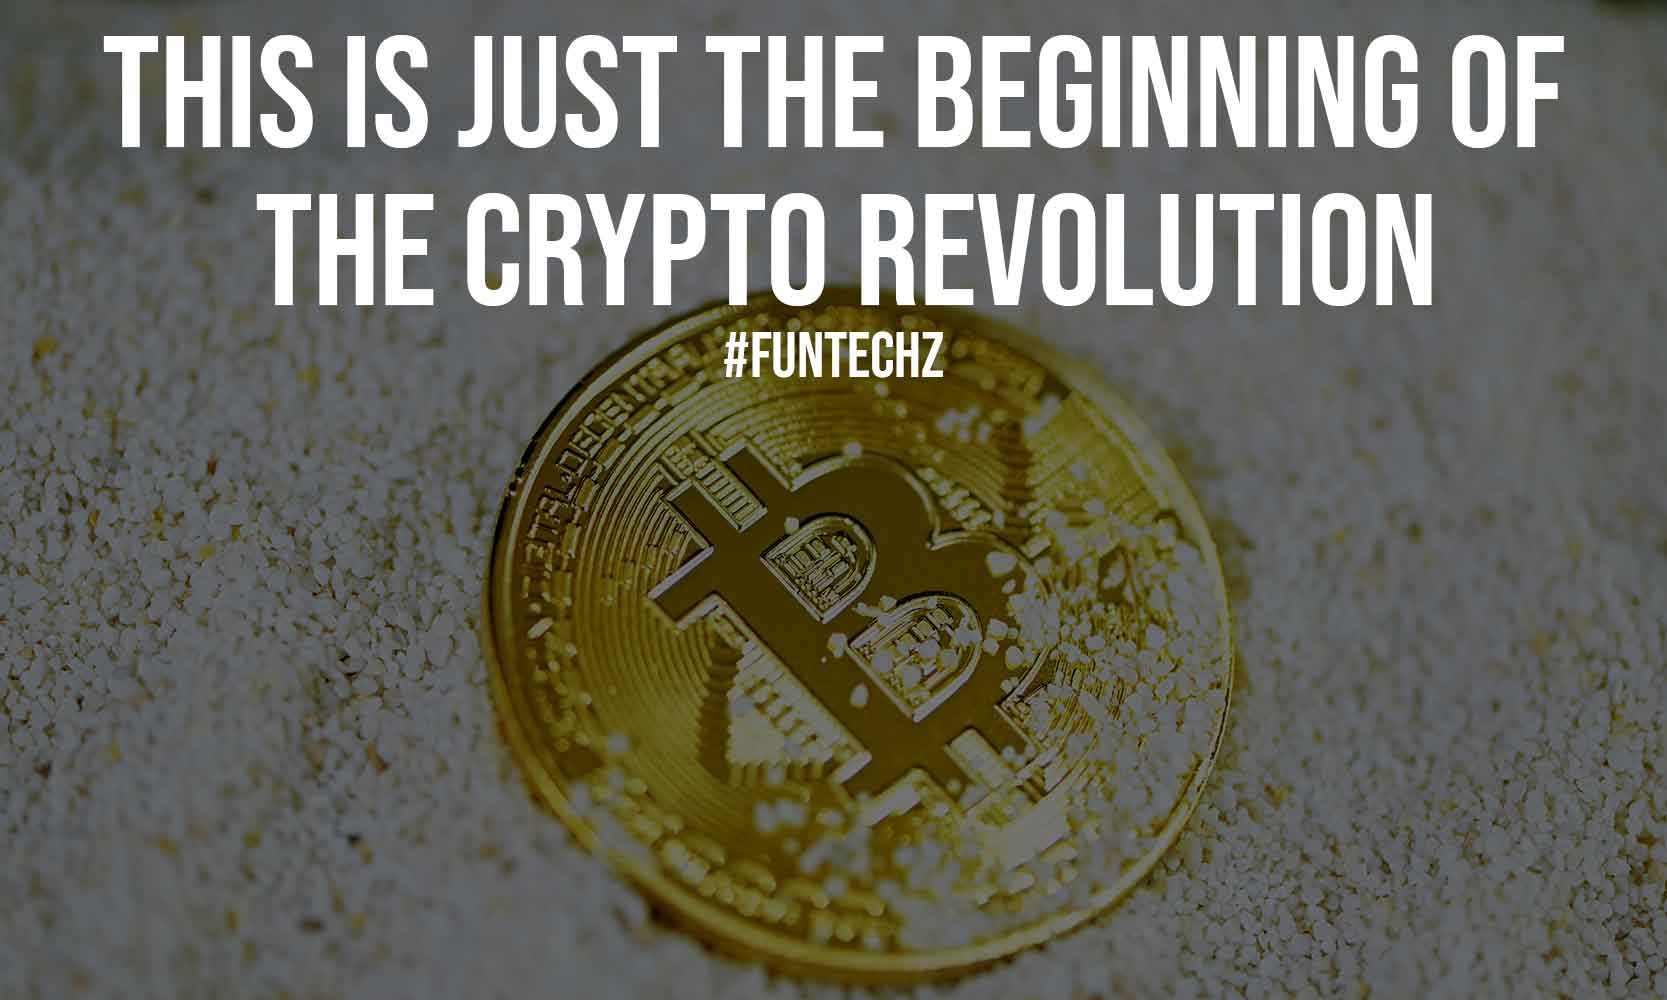 This is Just the Beginning of the Crypto Revolution